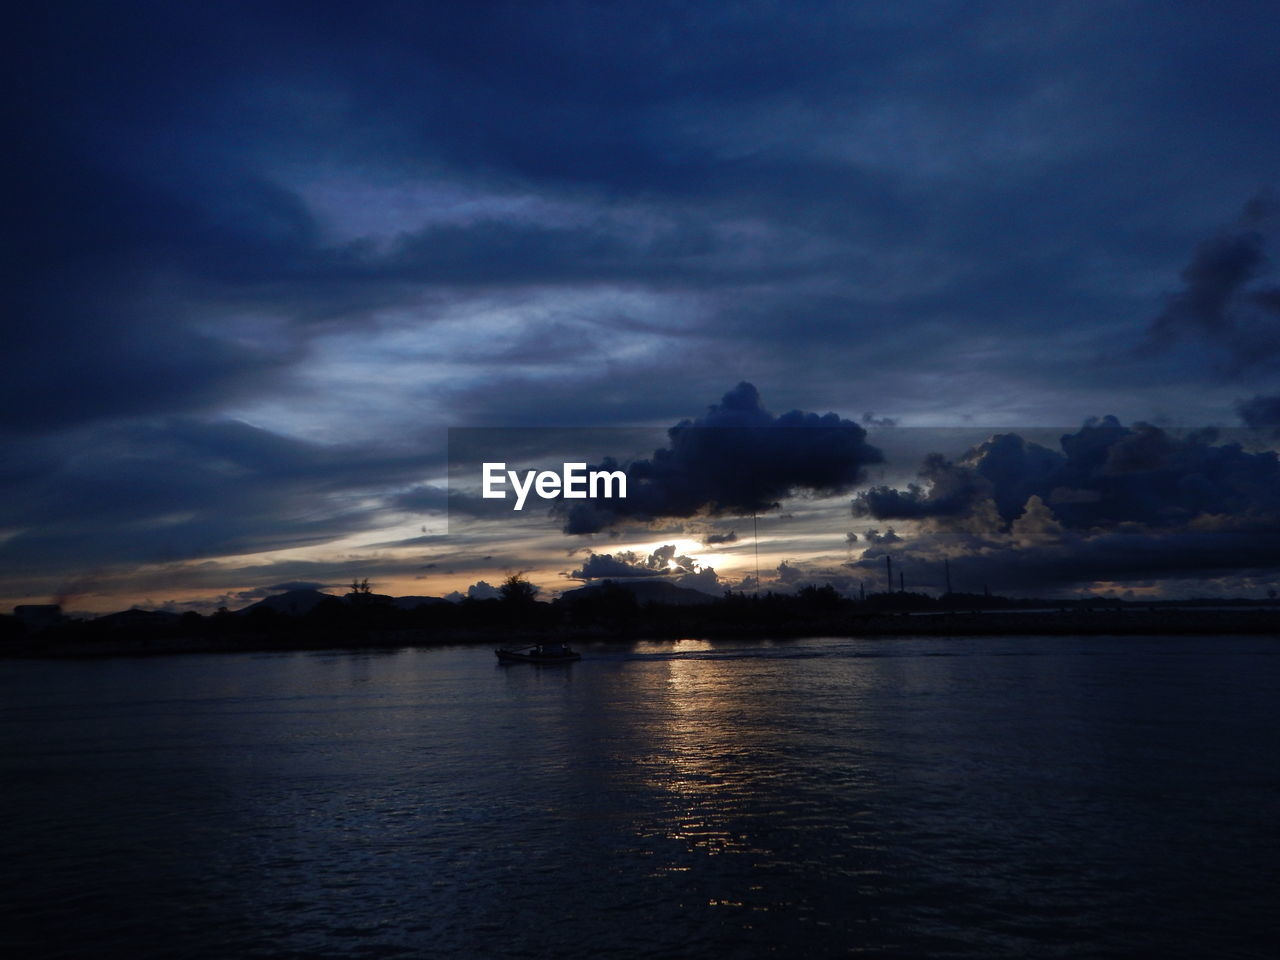 sky, beauty in nature, cloud - sky, water, scenics, nature, tranquility, tranquil scene, dusk, dramatic sky, no people, sunset, sea, waterfront, outdoors, storm cloud, illuminated, day